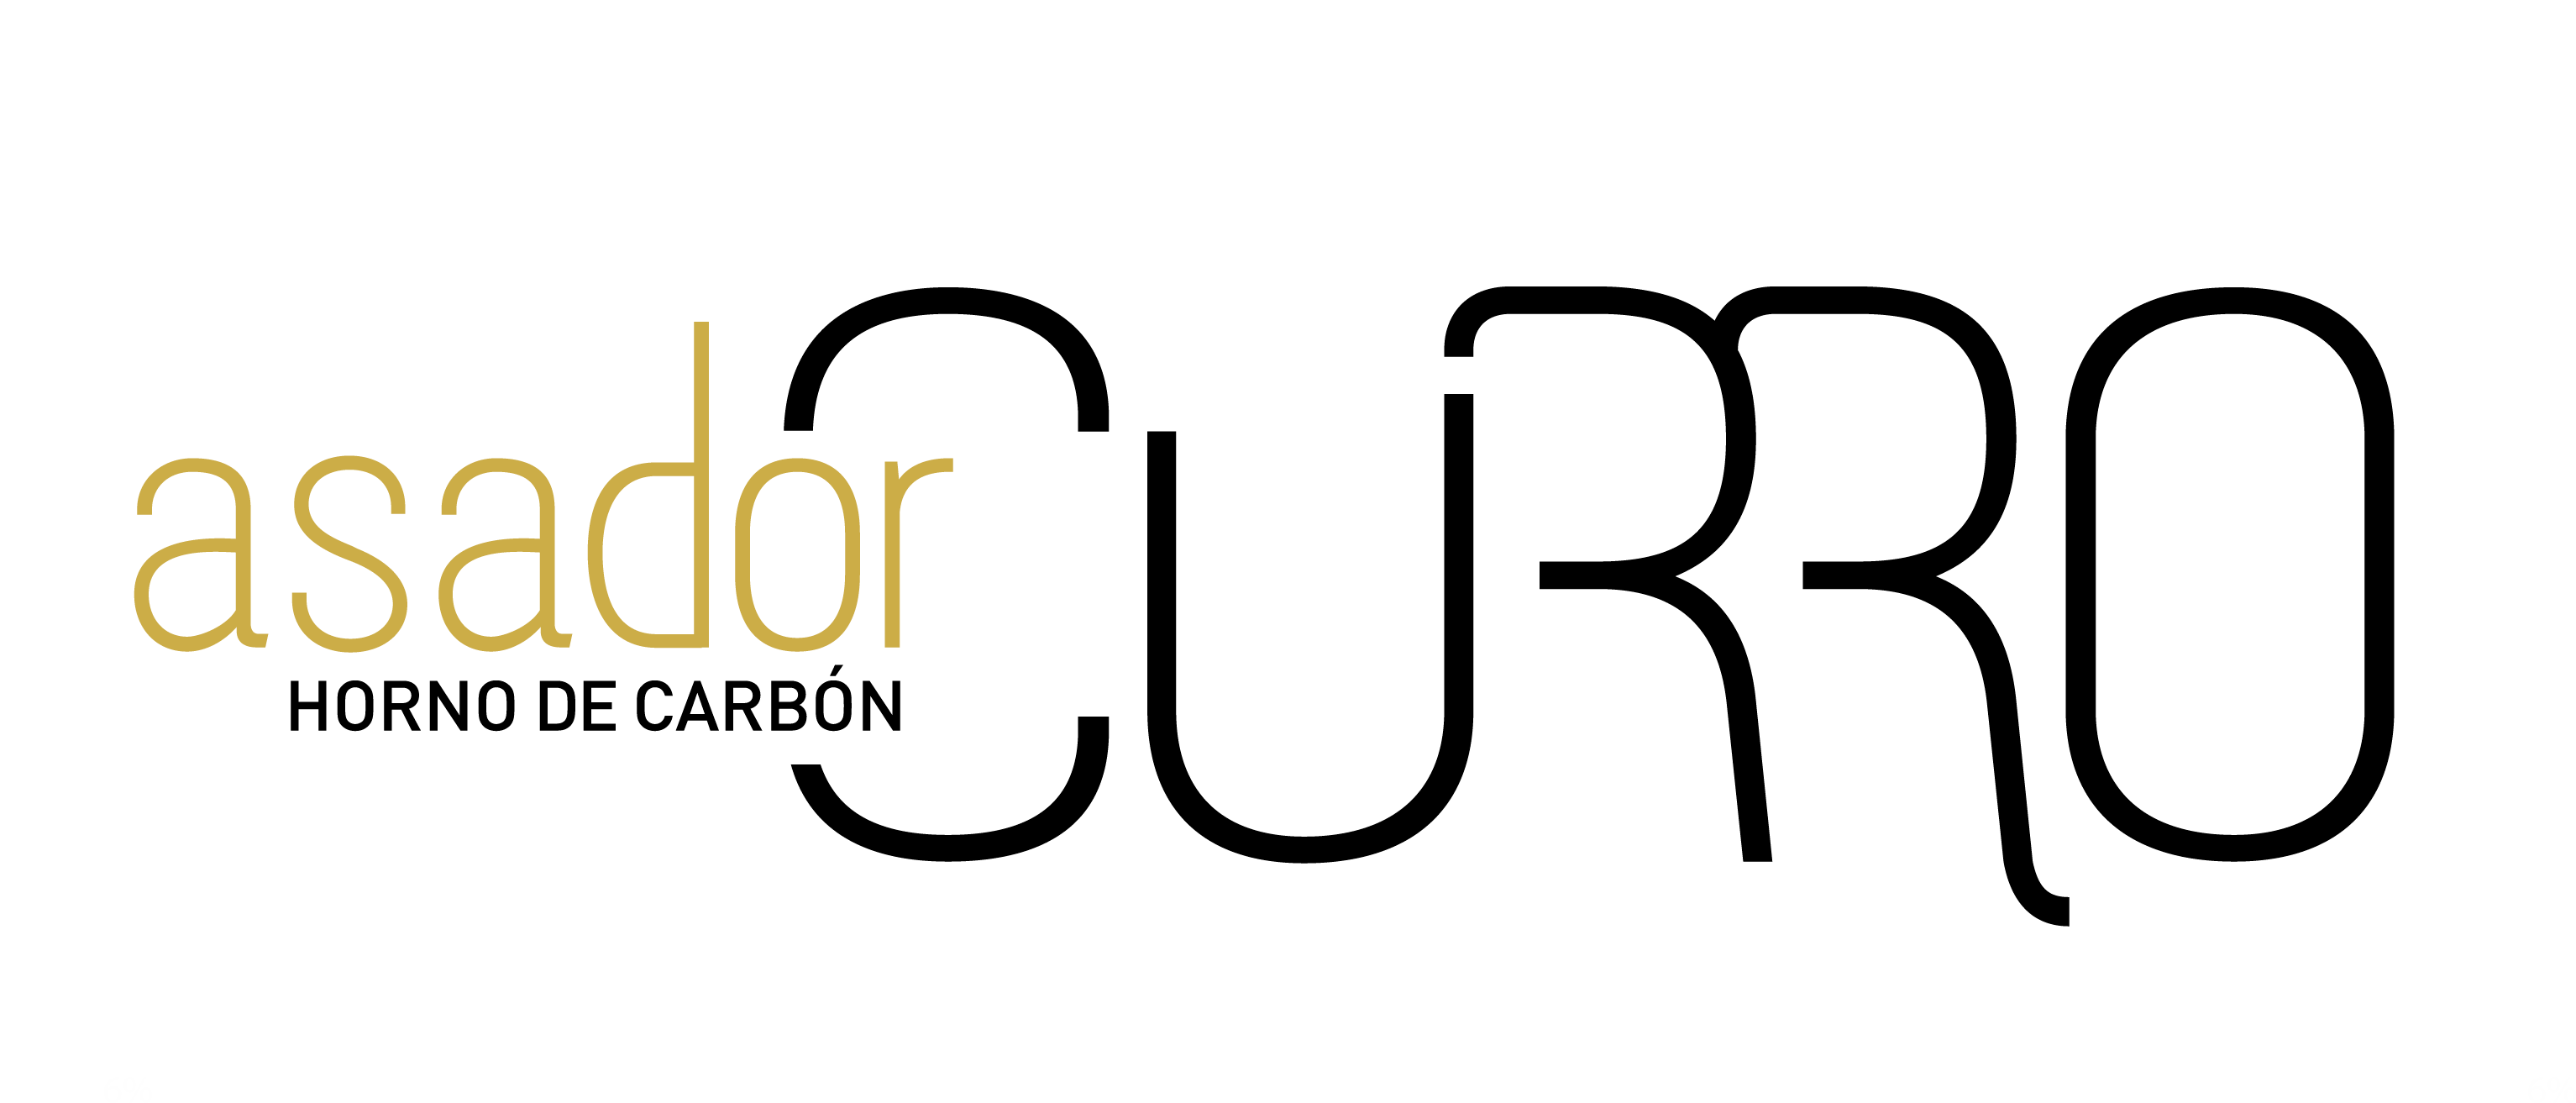 https://www.bycurropremium.es/wp-content/uploads/2020/12/ASADOR-CURRO-1.png